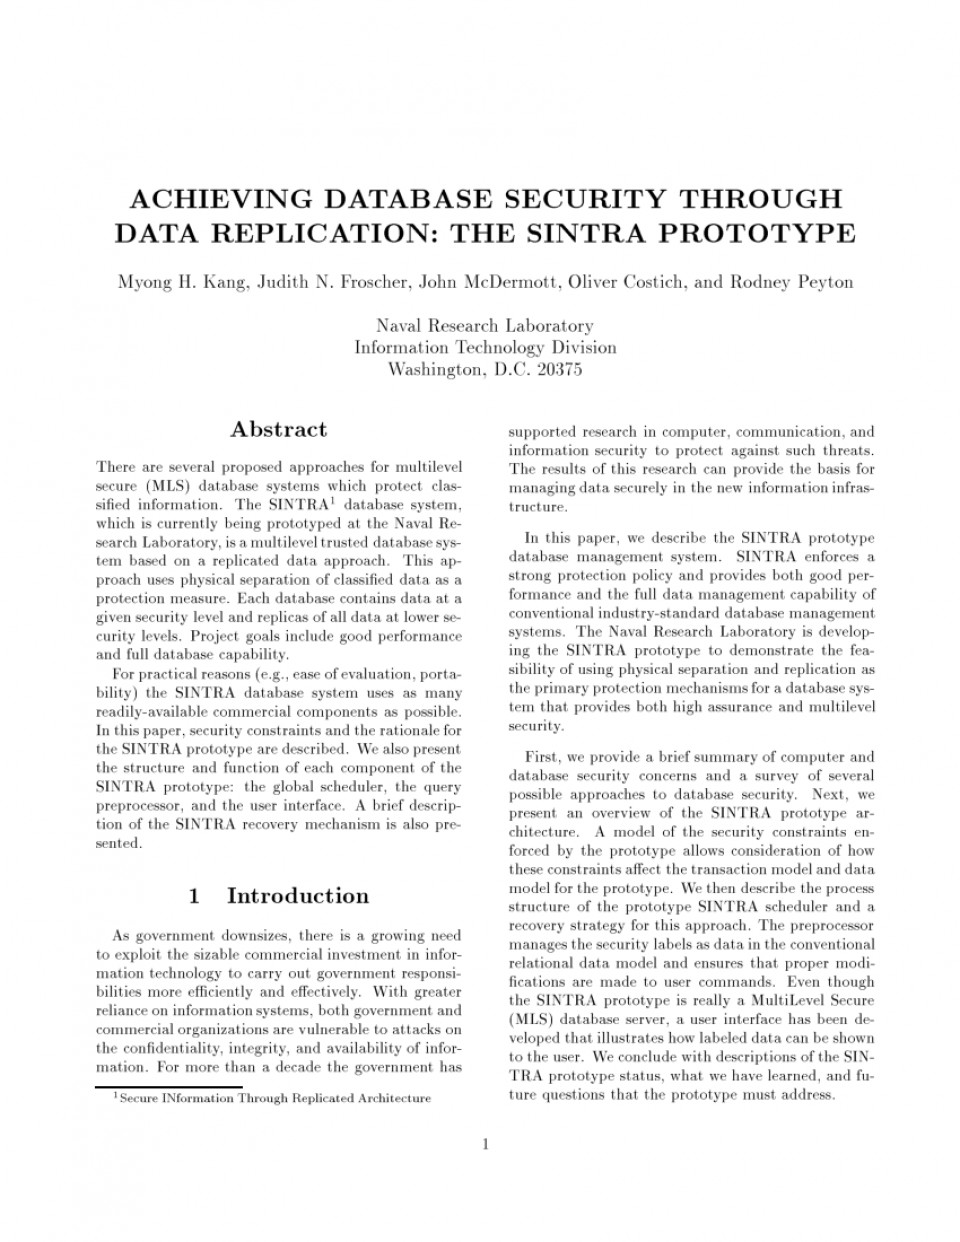 003 Database Security Research Paper Abstract Fascinating 960